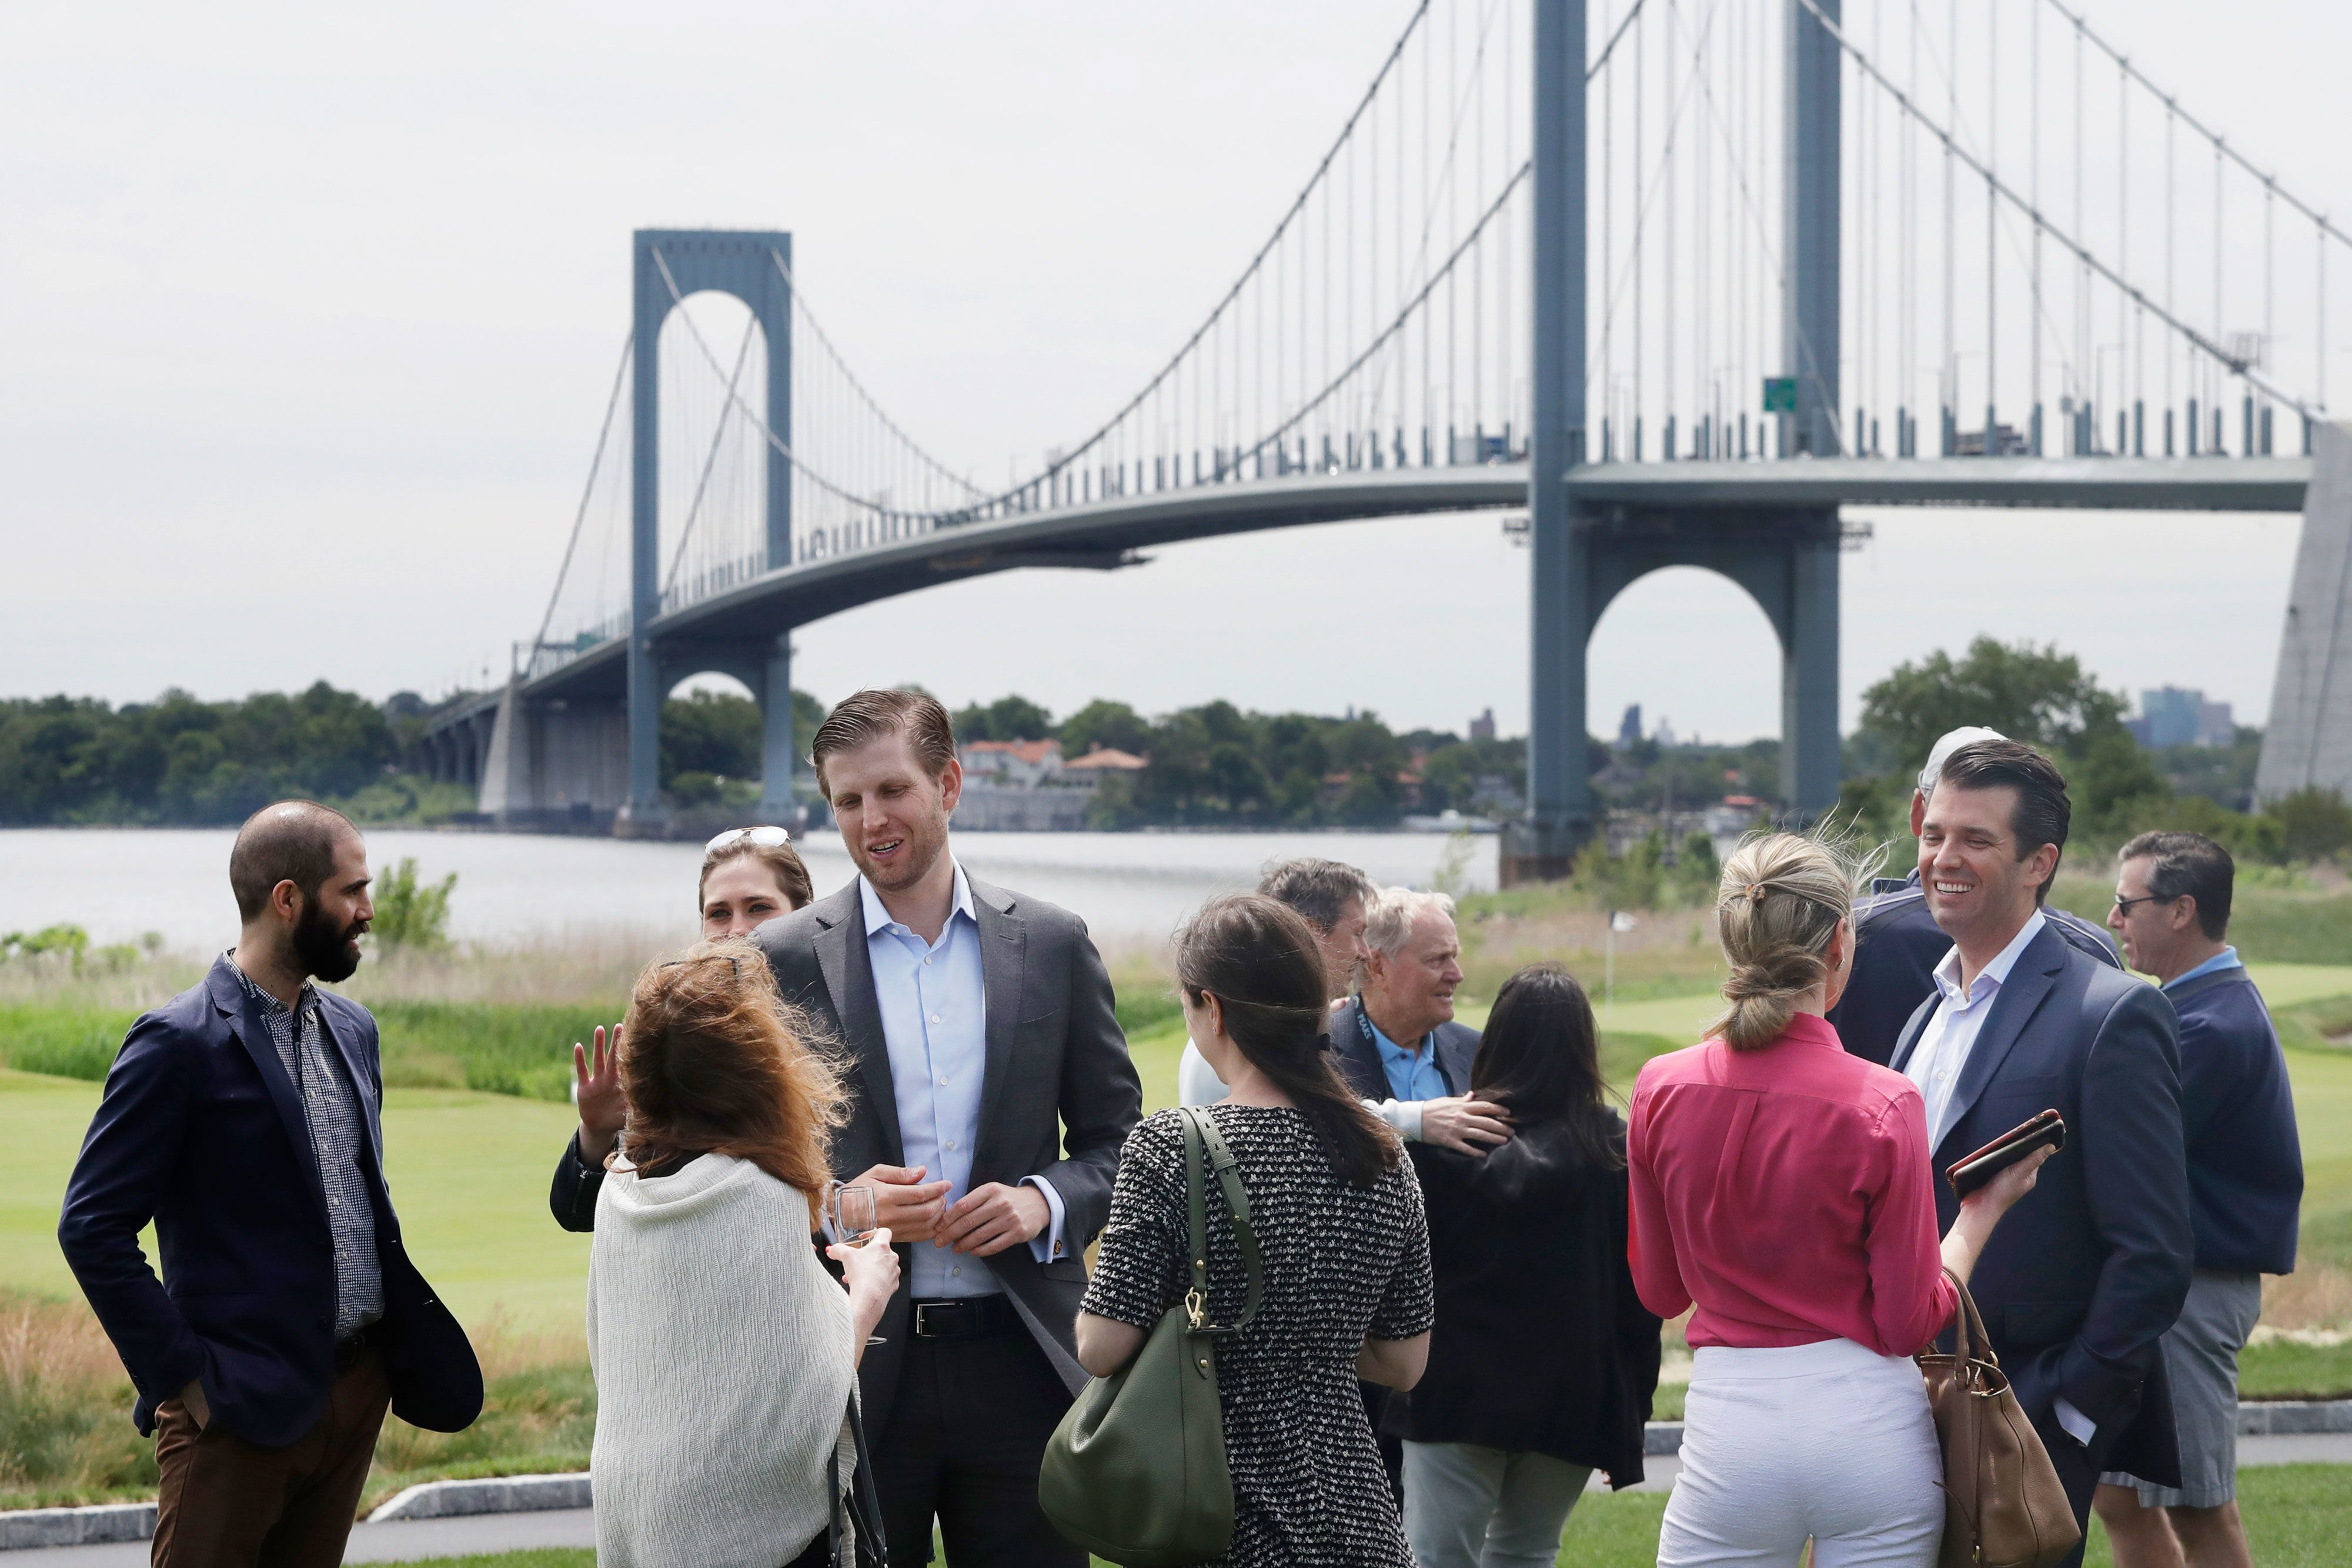 Trump's Bronx golf course lost $122,000 last year and blamed NYC